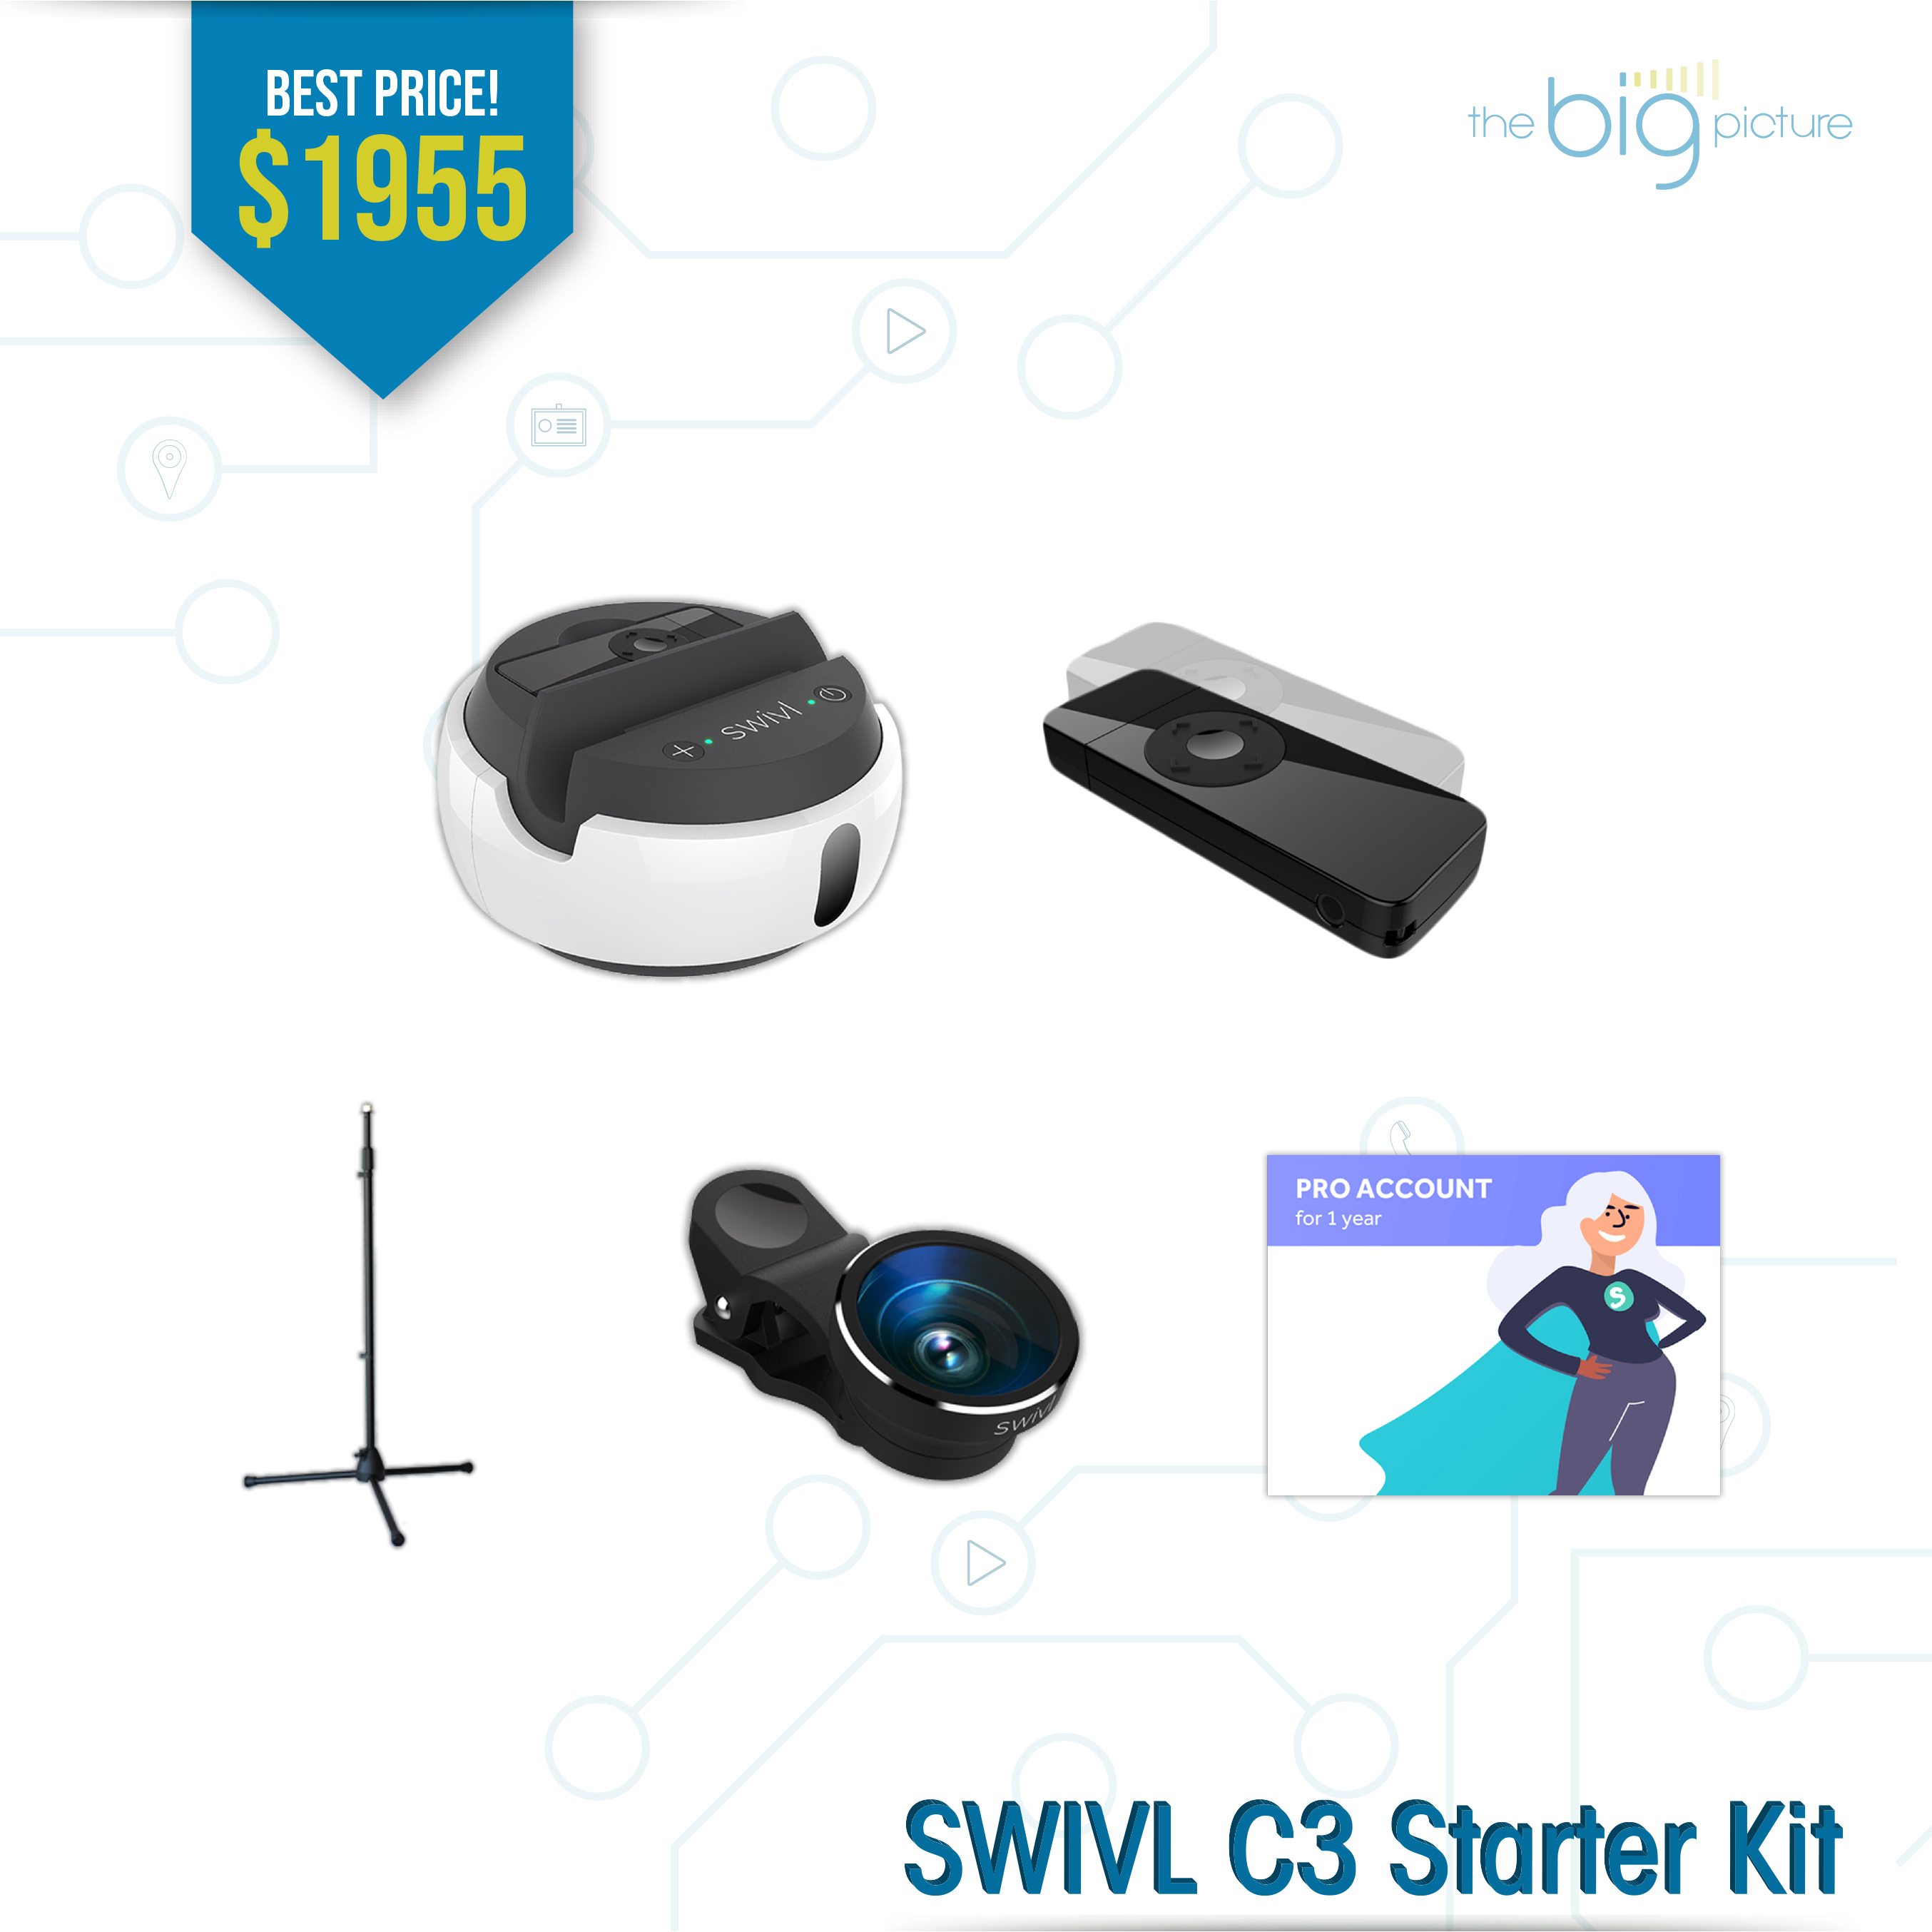 A set of products for SWIVL C3